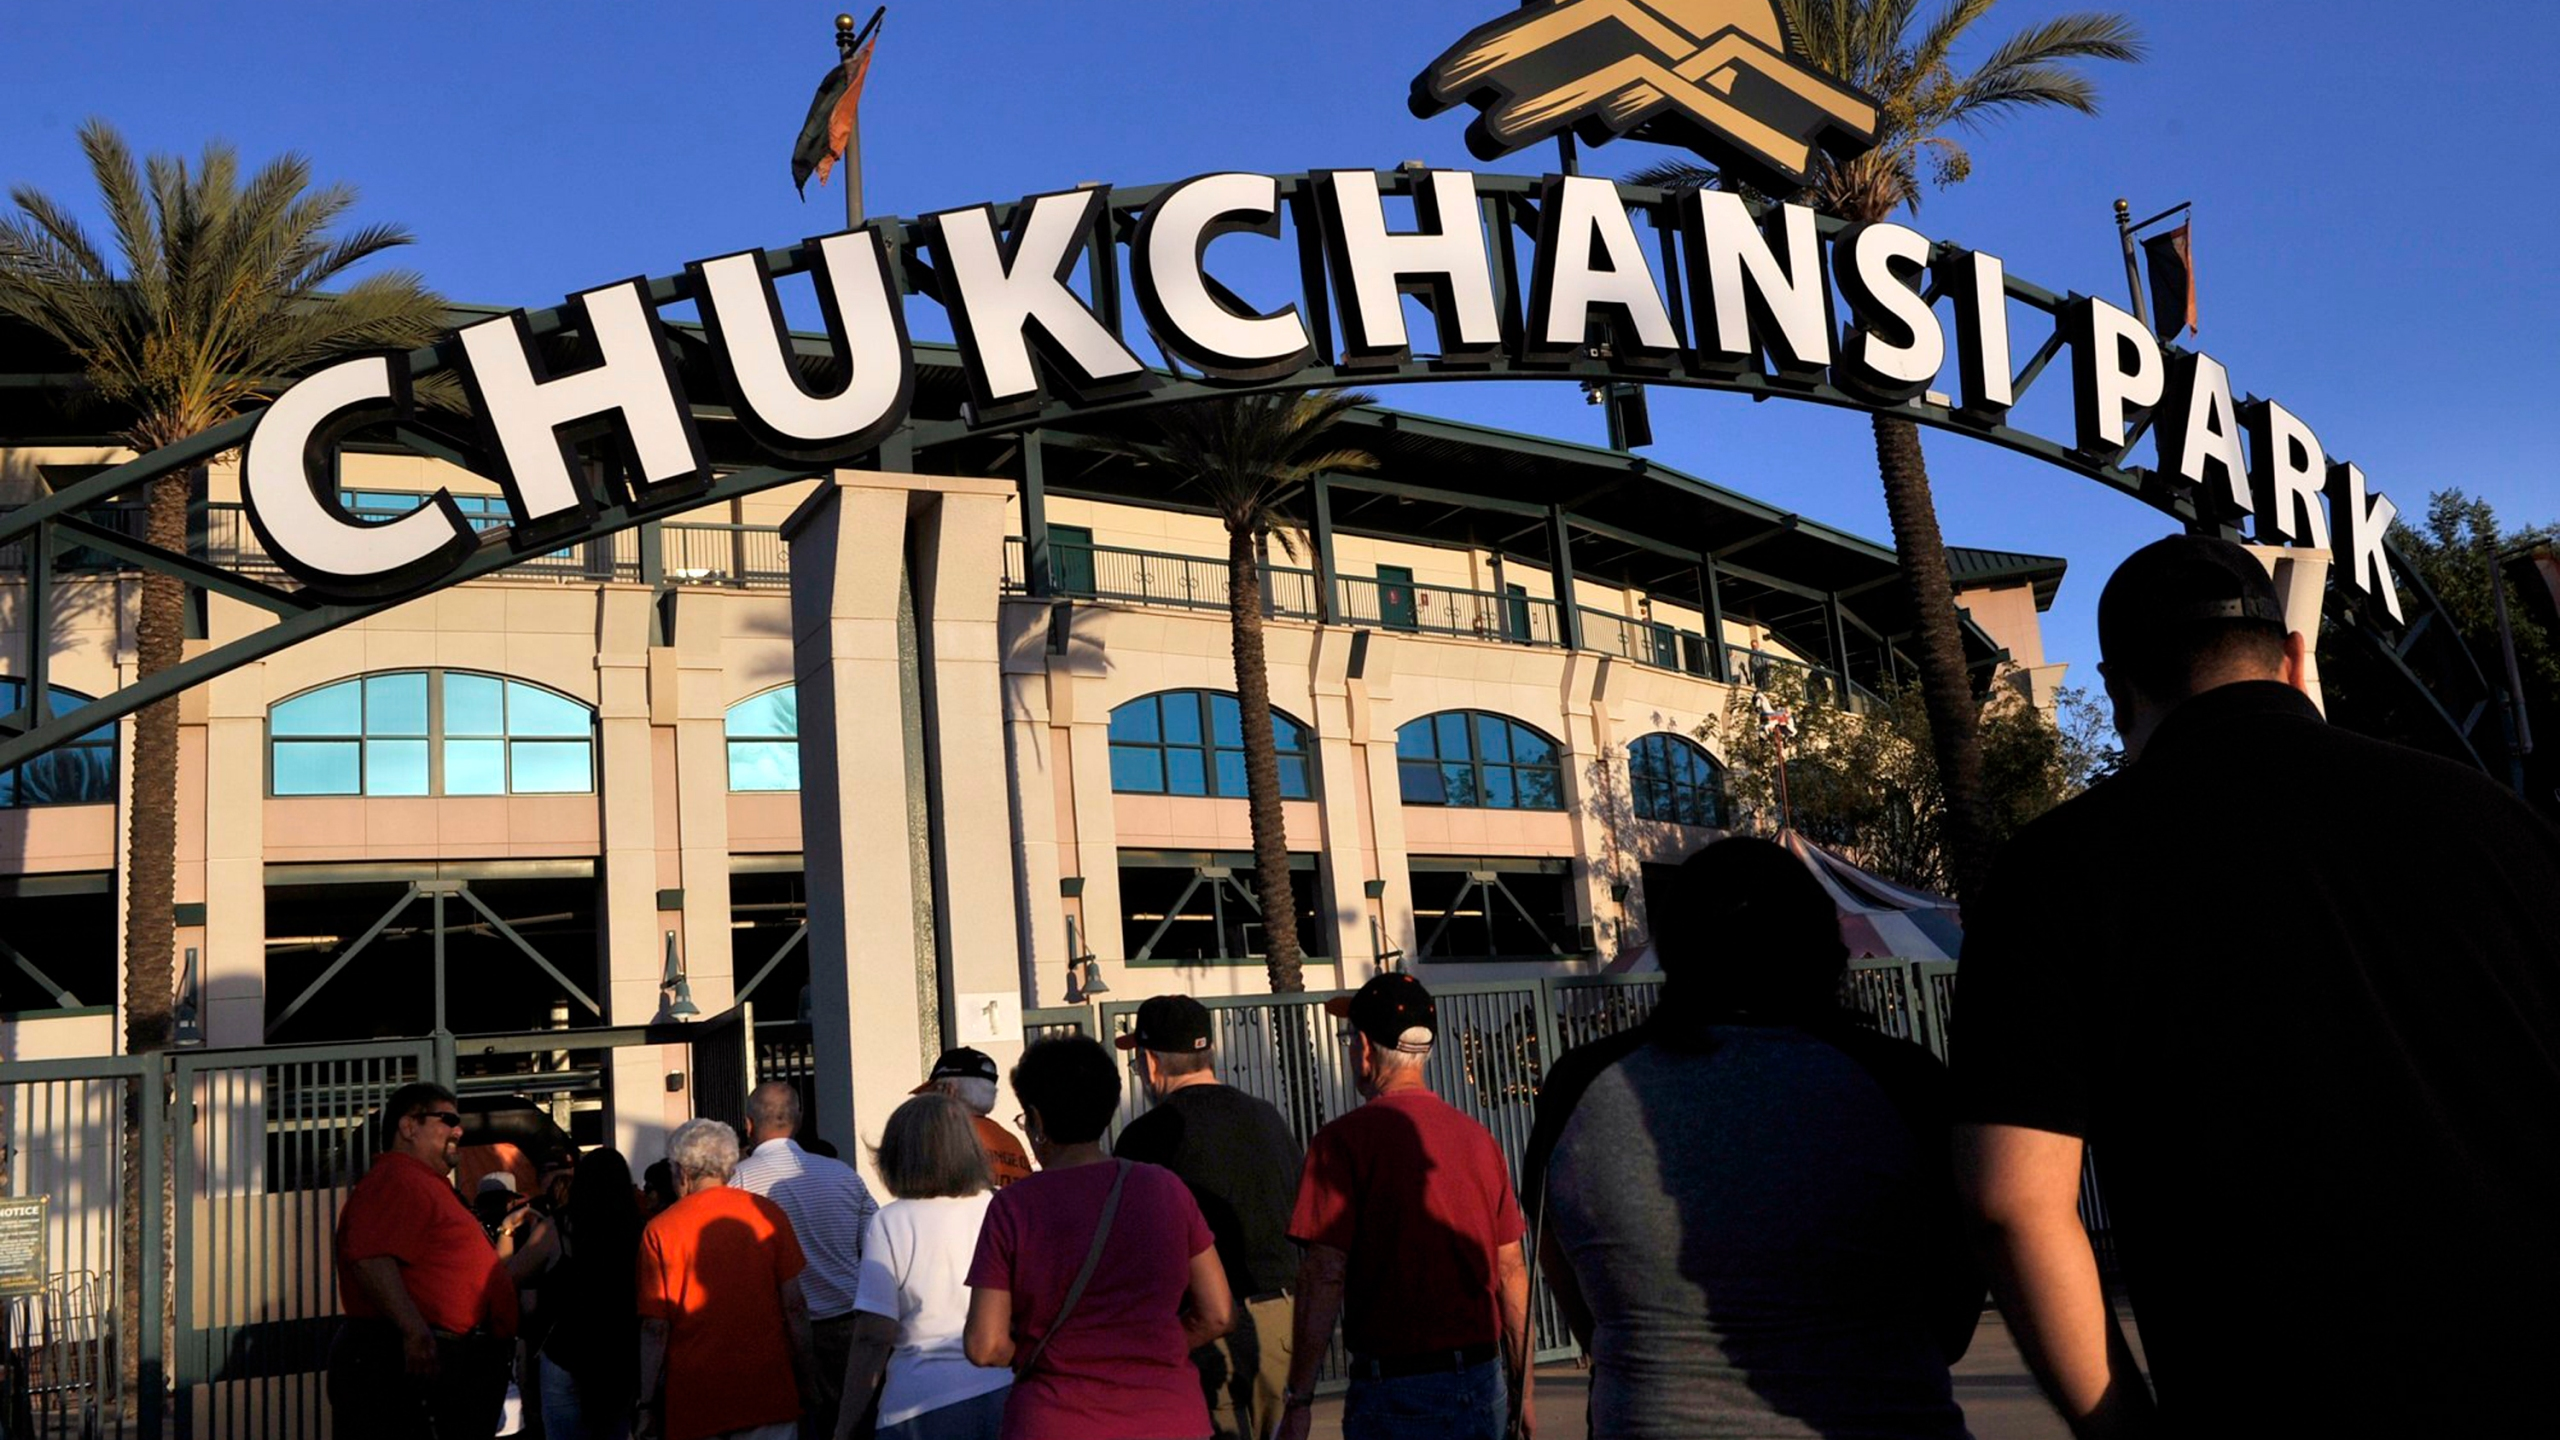 In this Sept. 18, 2015, file photo, fans arrive at Chukchansi Park in Fresno, Calif., for a minor-league baseball game between the Fresno Grizzlies and the Round Rock Express. (Eric Paul Zamora/The Fresno Bee via AP, File)